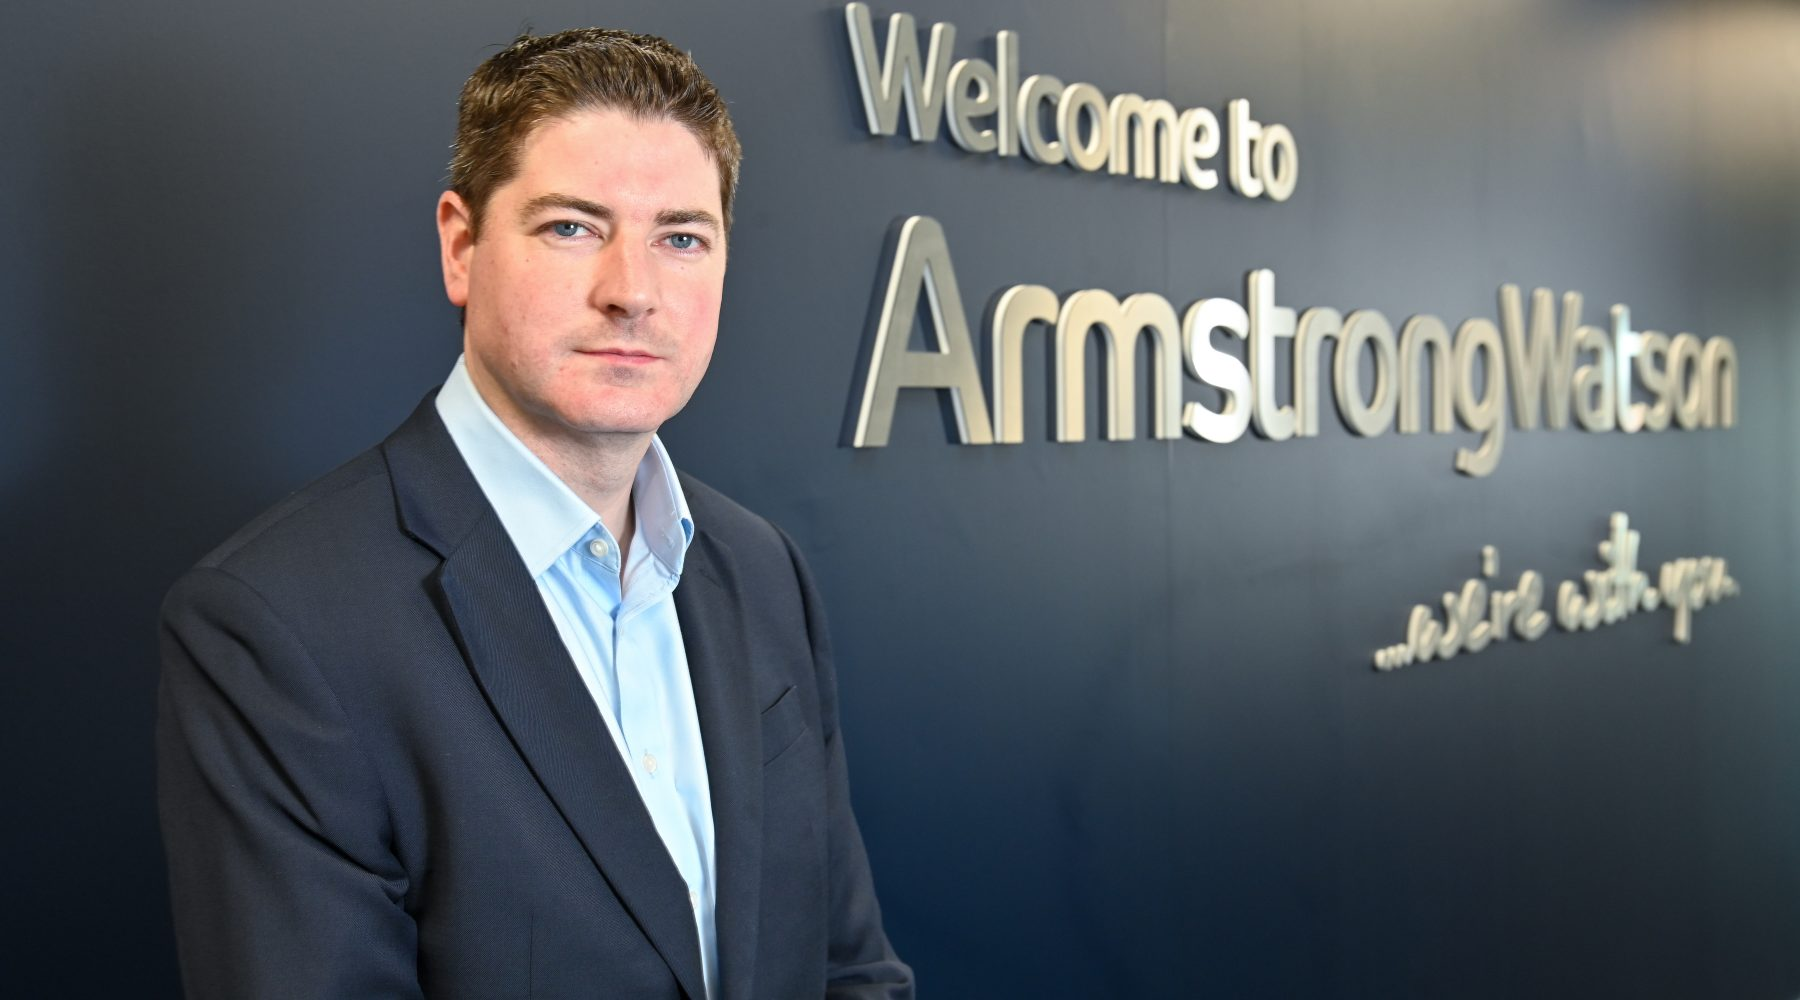 New Tax Partner sees Armstrong Watson as 'exciting…